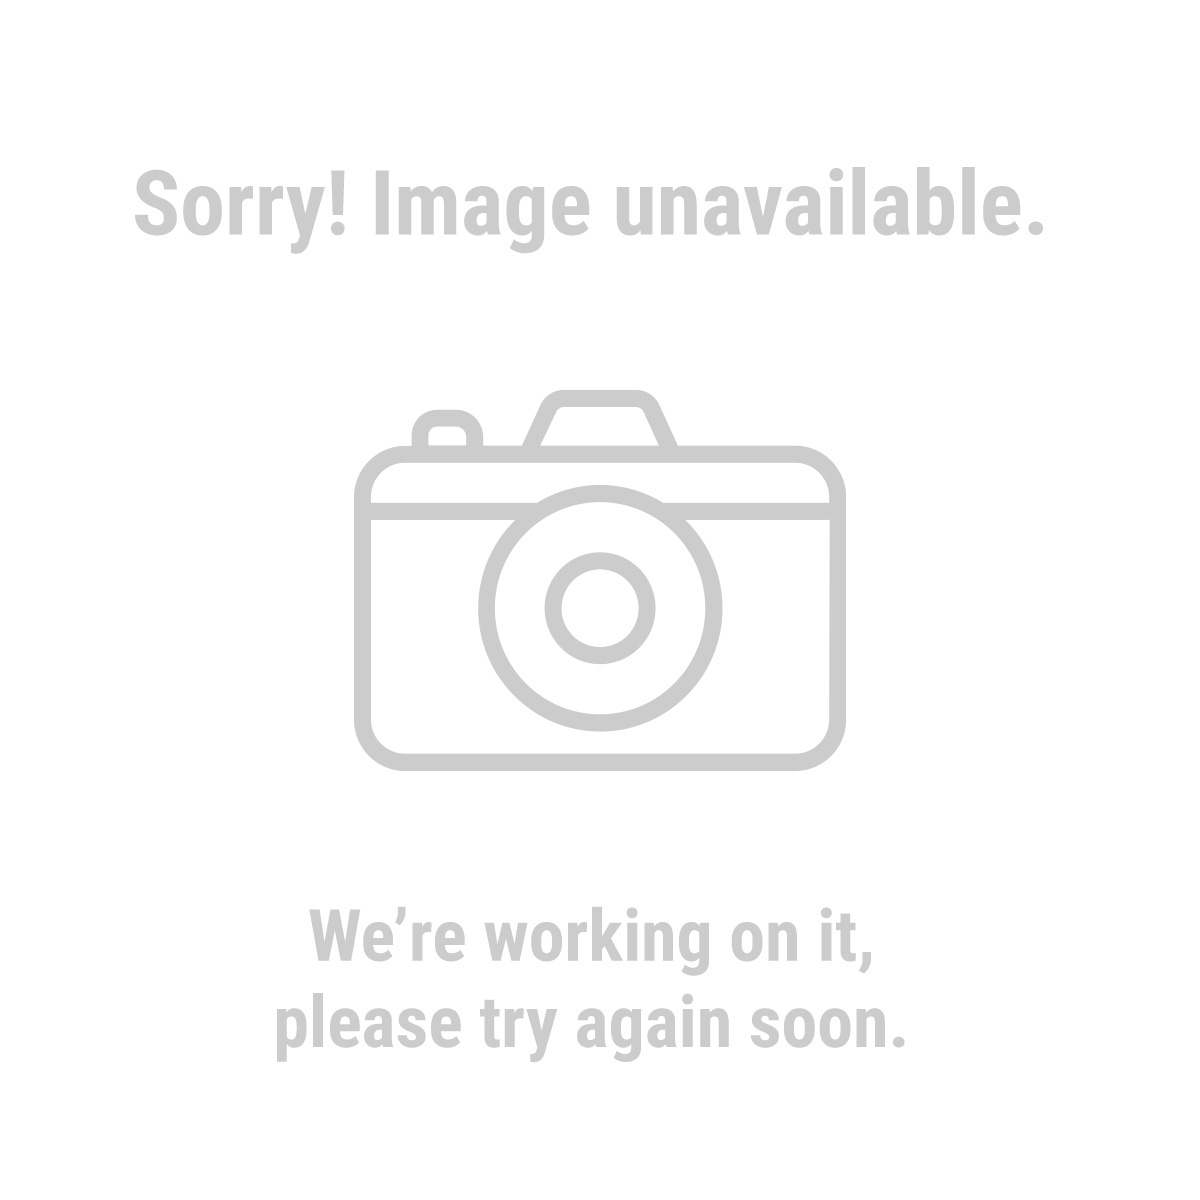 Vanguard 62948 25 ft. x 12 Gauge Outdoor Extension Cord